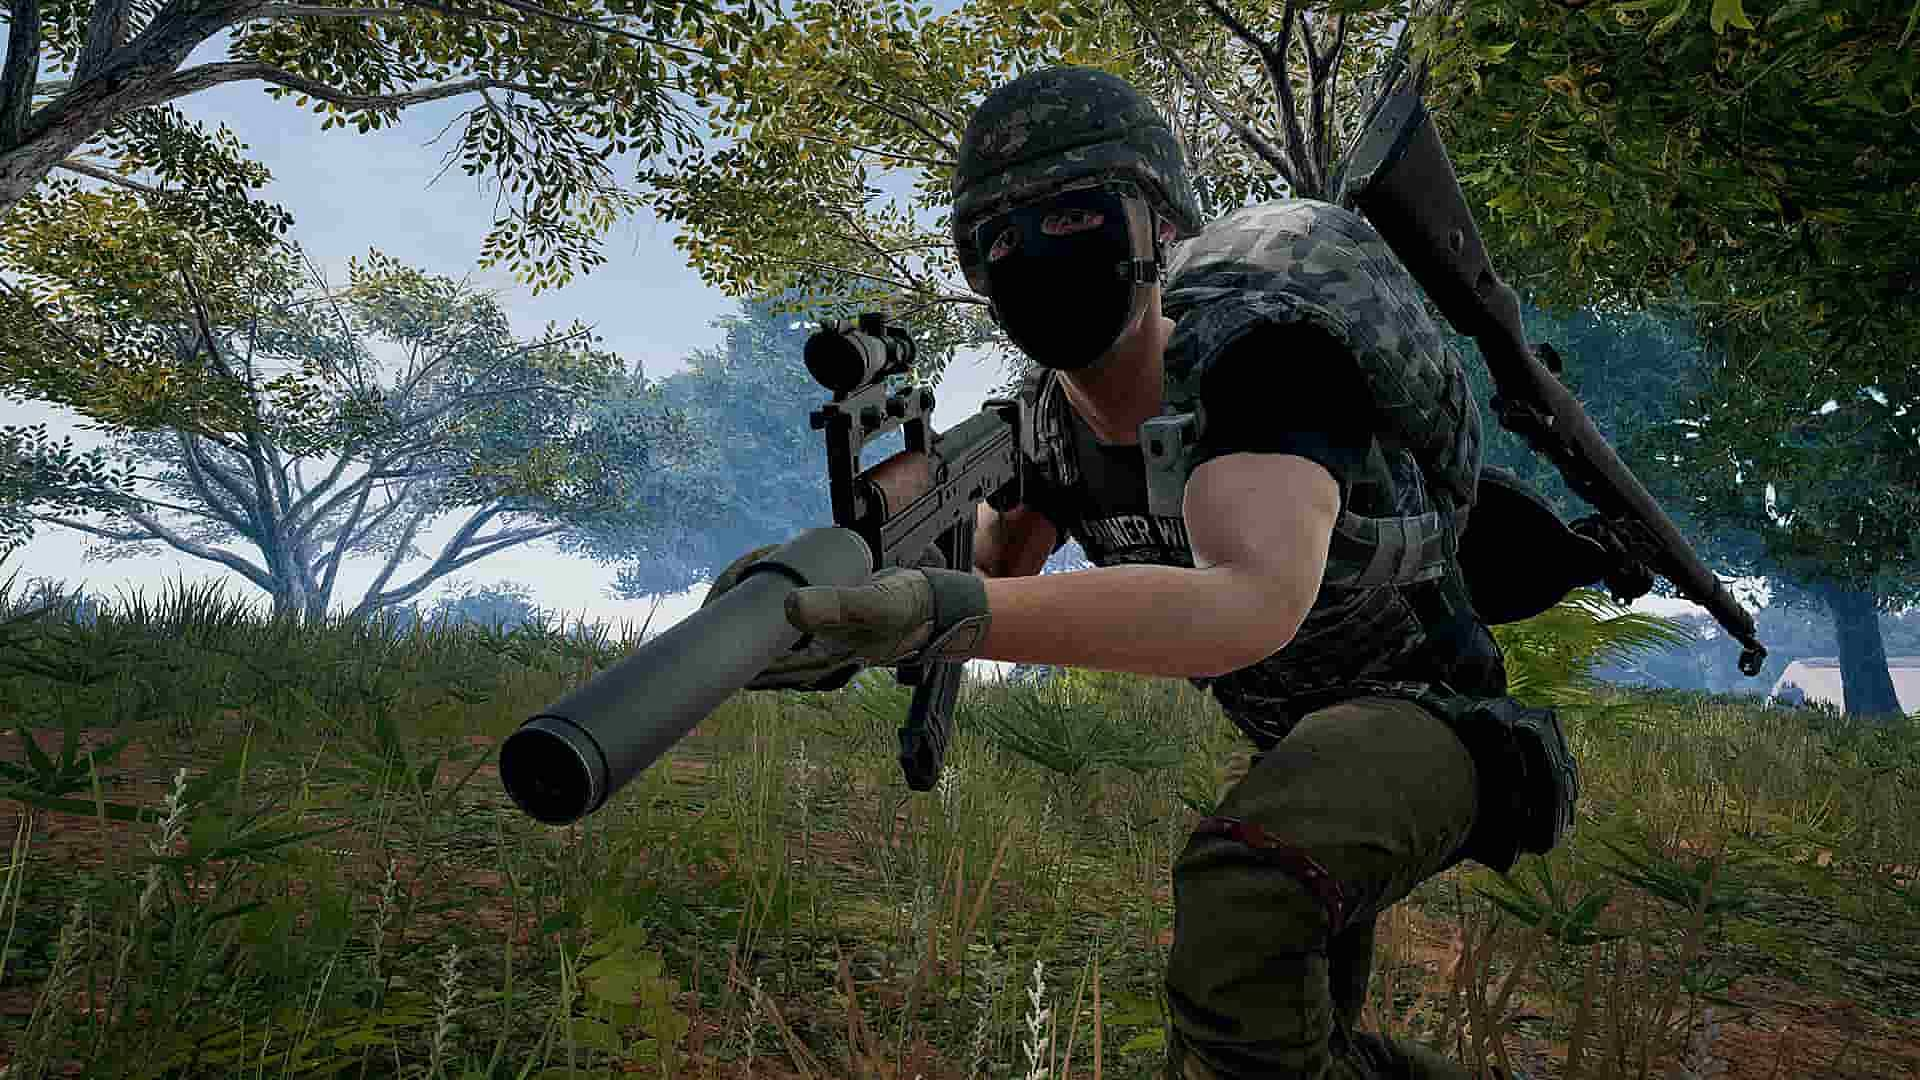 Pubg Sanhok Wallpaper 4k: PLAYERUNKNOWN'S BATTLEGROUNDS